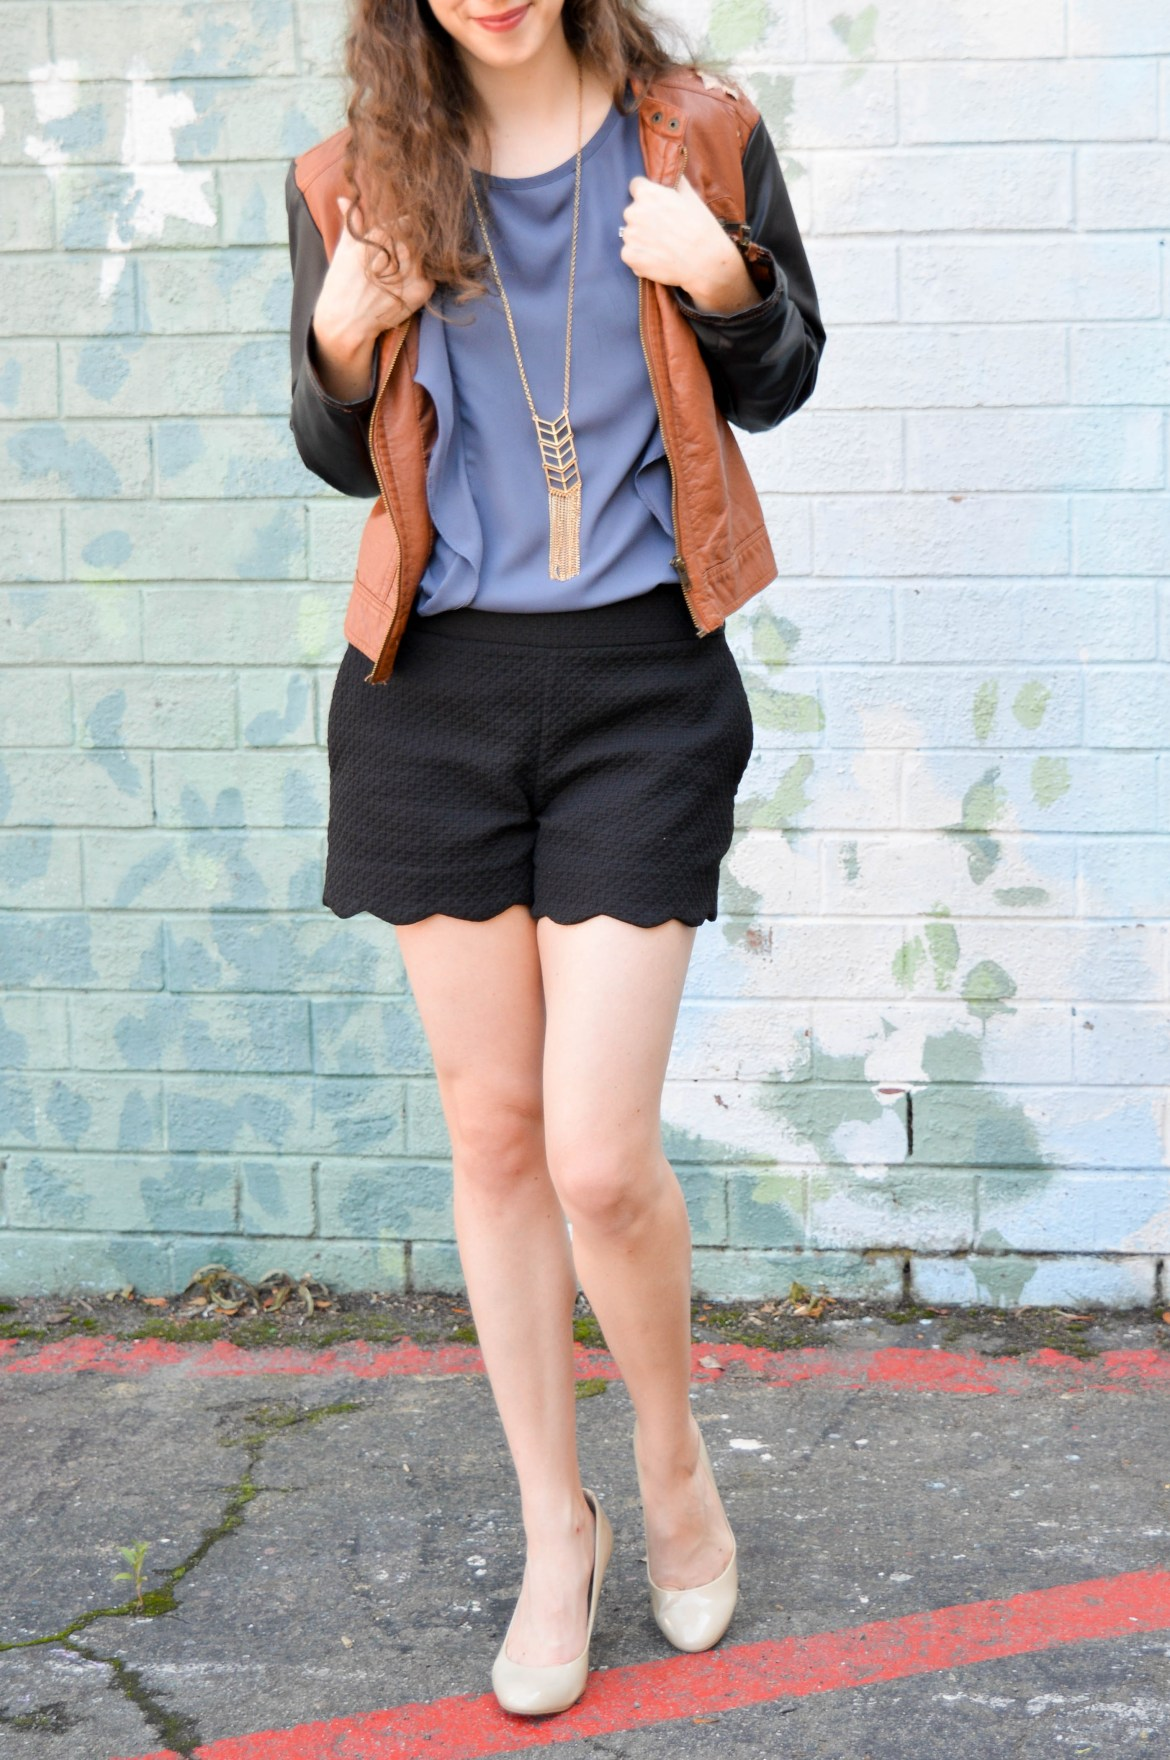 Pleather jacket + scalloped shorts